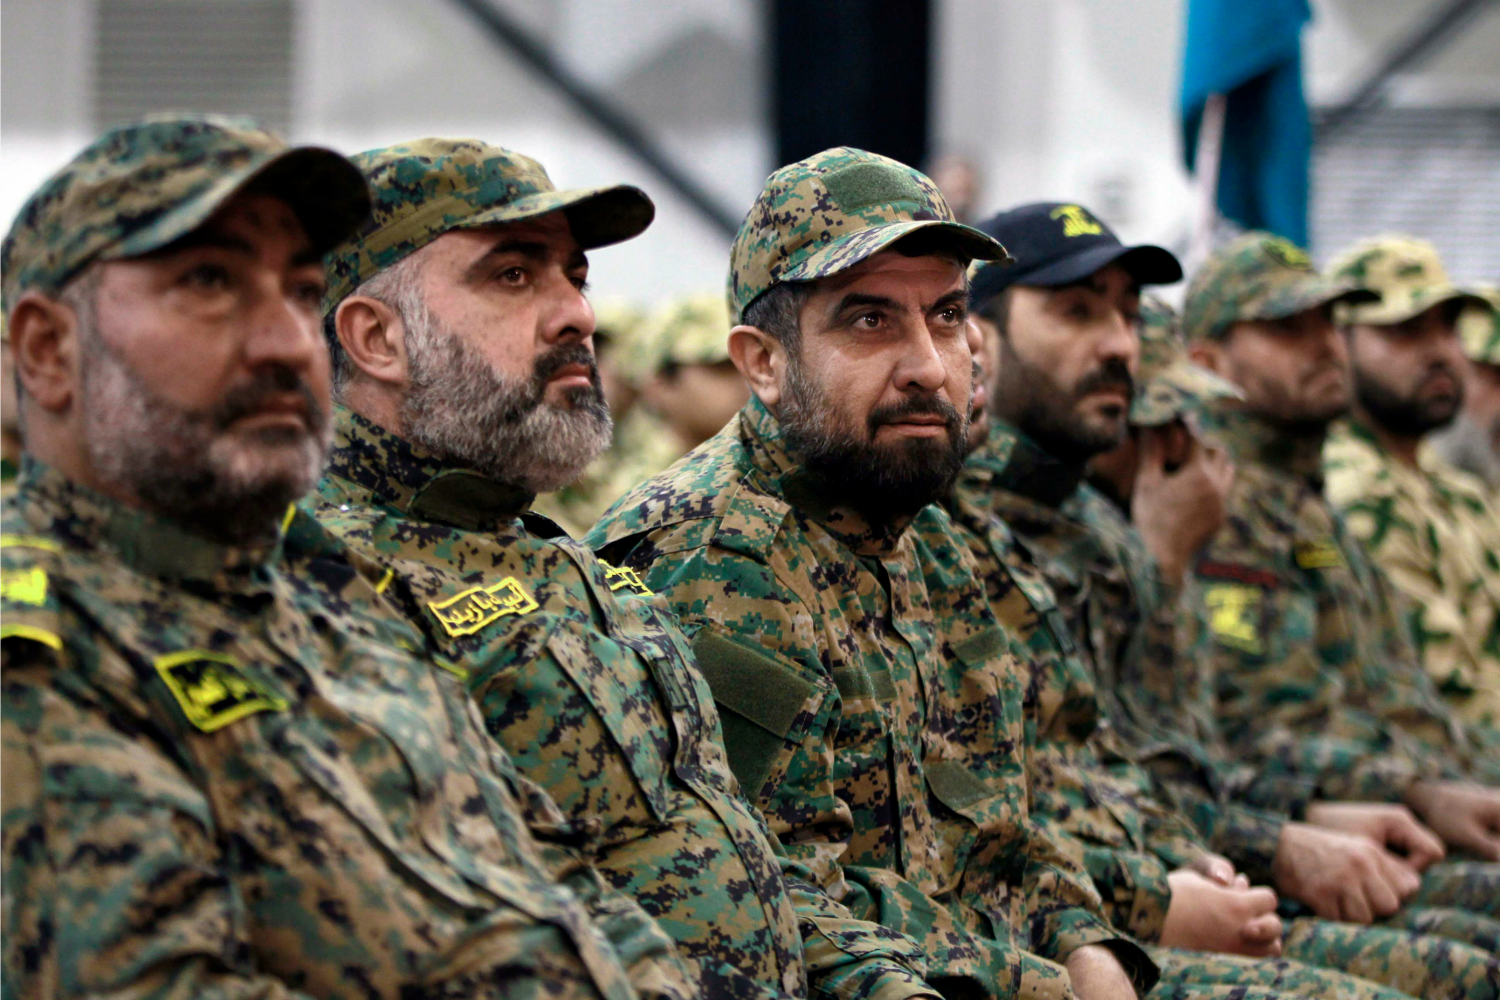 Hezbollah recruits